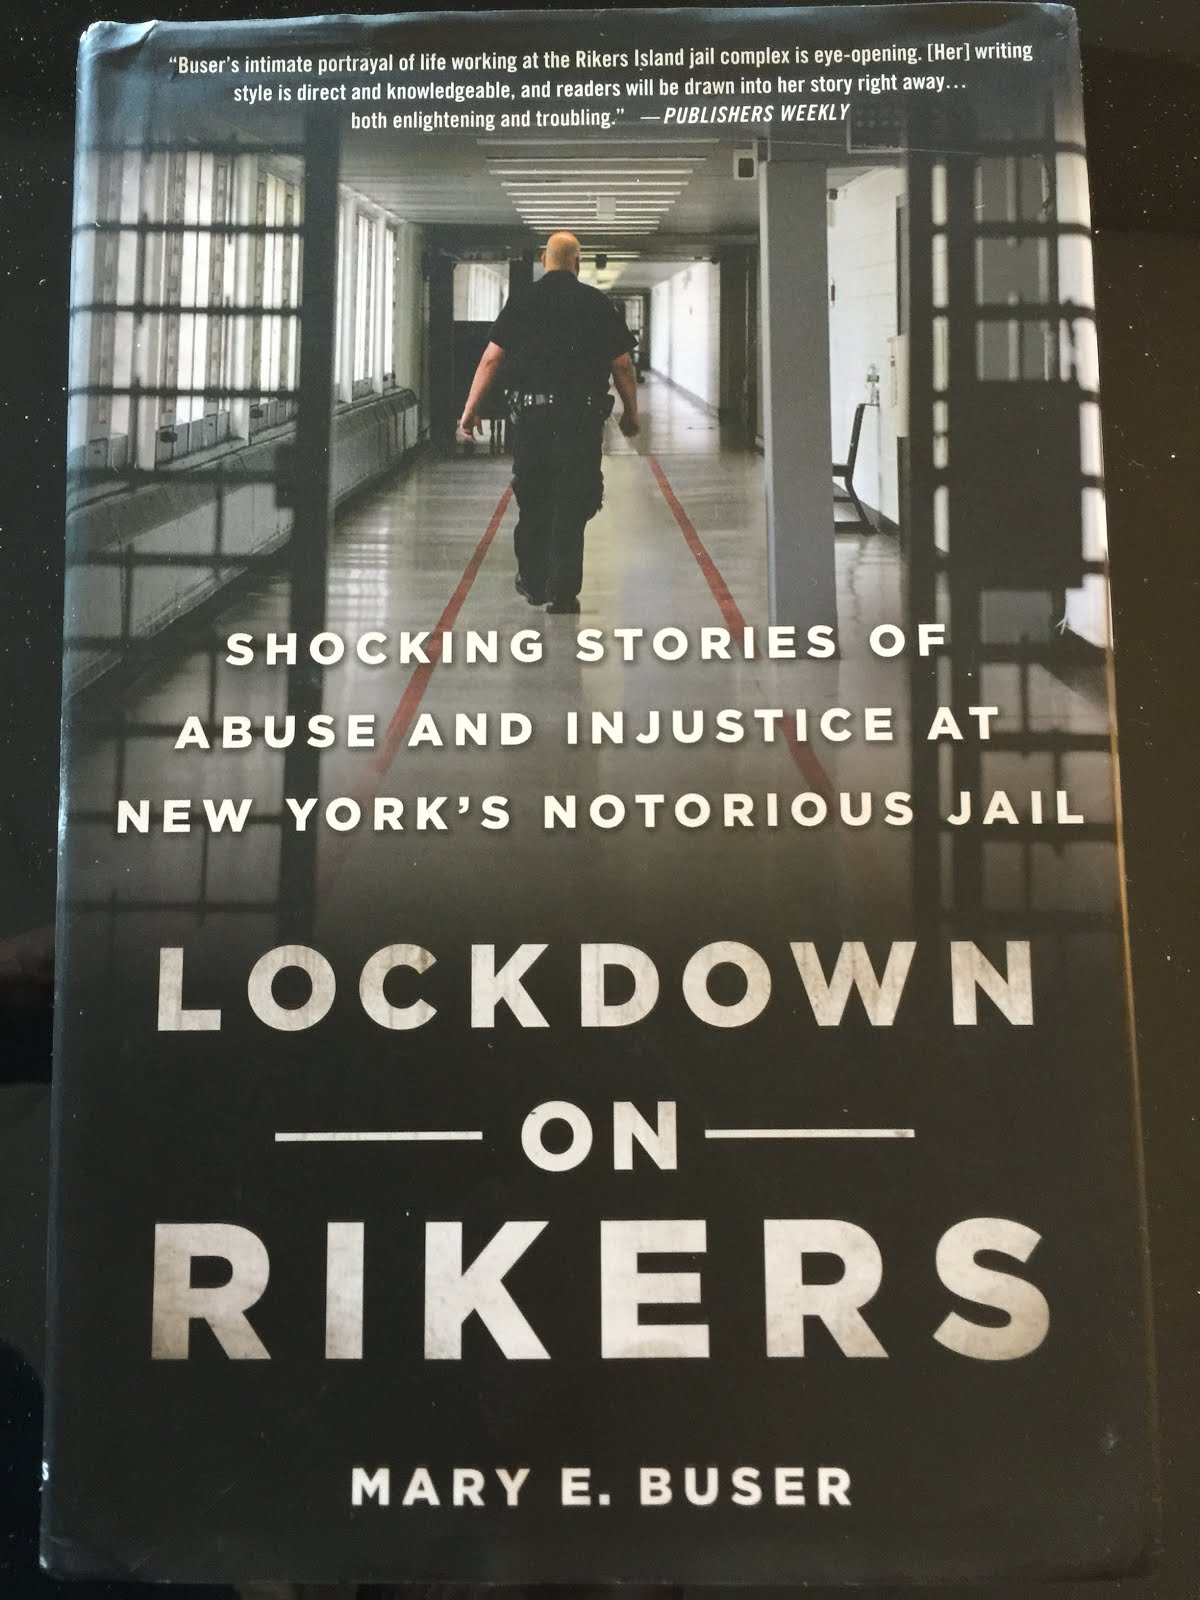 Lockdown on Rikers